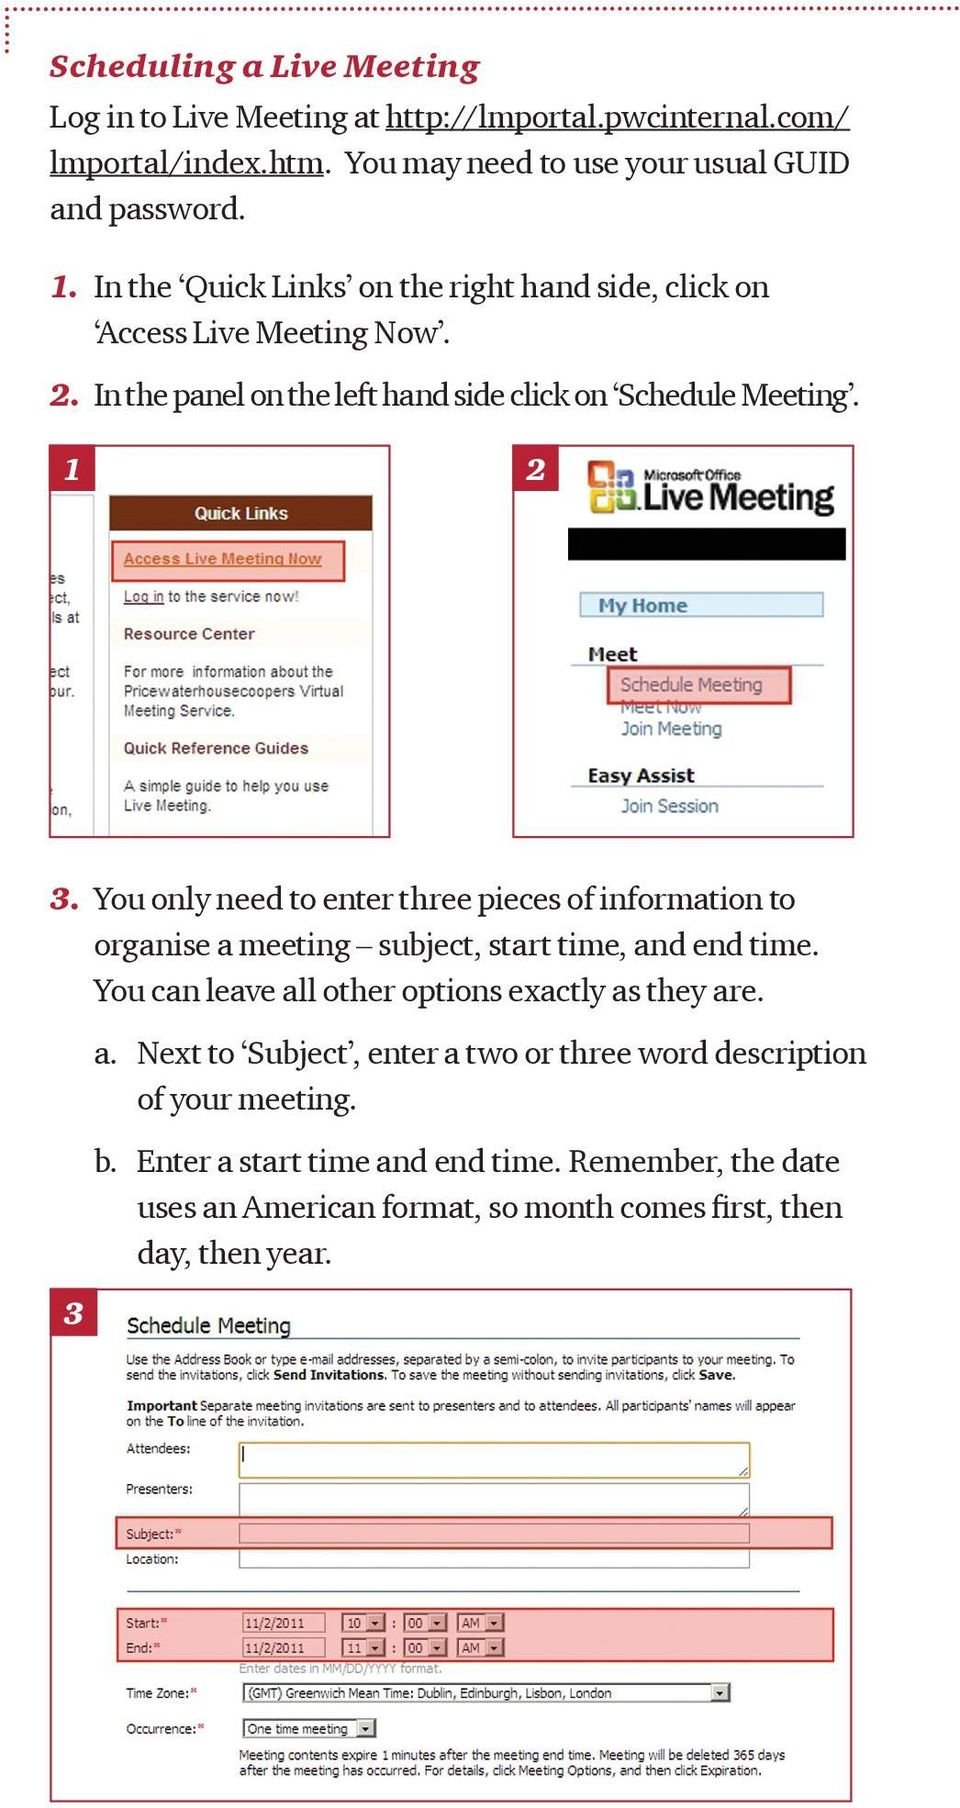 You only need to enter three pieces of information to organise a meeting subject, start time, and end time. You can leave all other options exactly as they are. a. Next to Subject, enter a two or three word description of your meeting.